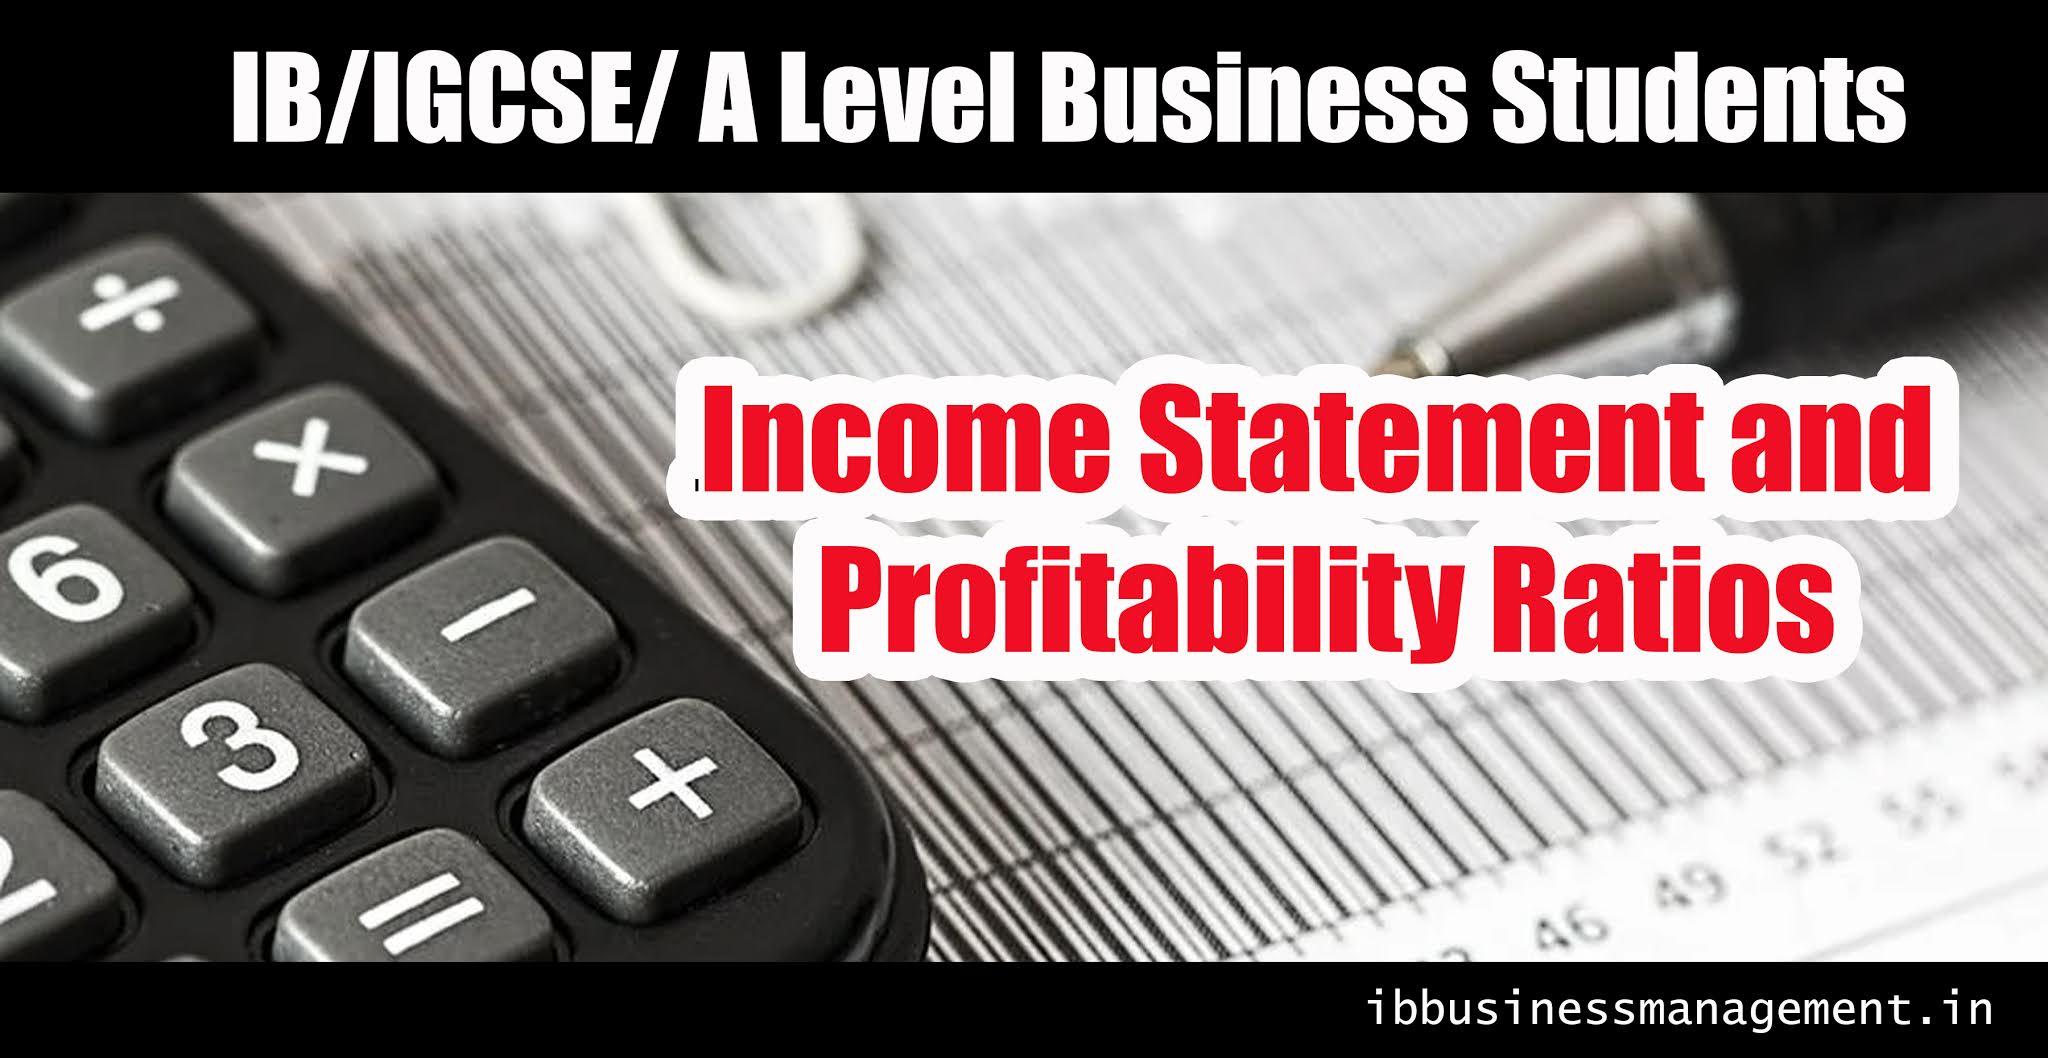 Income Statement and Profitability Ratios workshet for IB, IGCSE, A Level  Business students